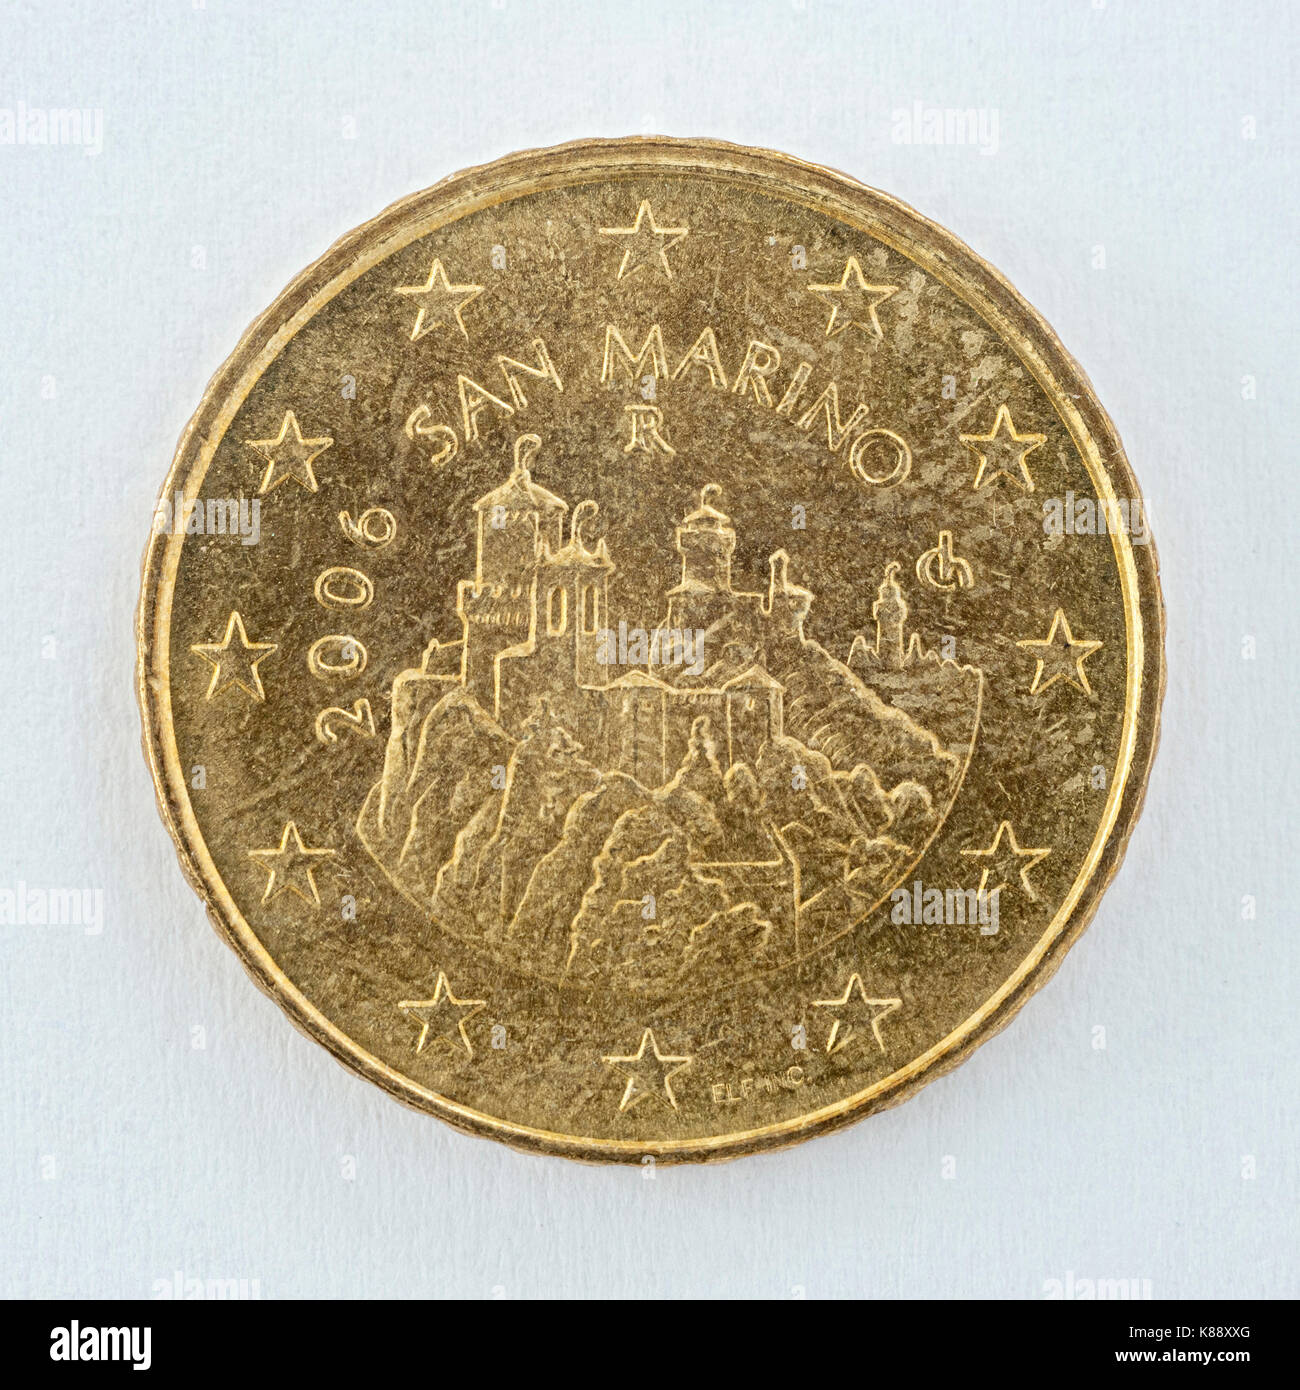 A 50 (Euro) cent coin with the San Marino emblem. - Stock Image